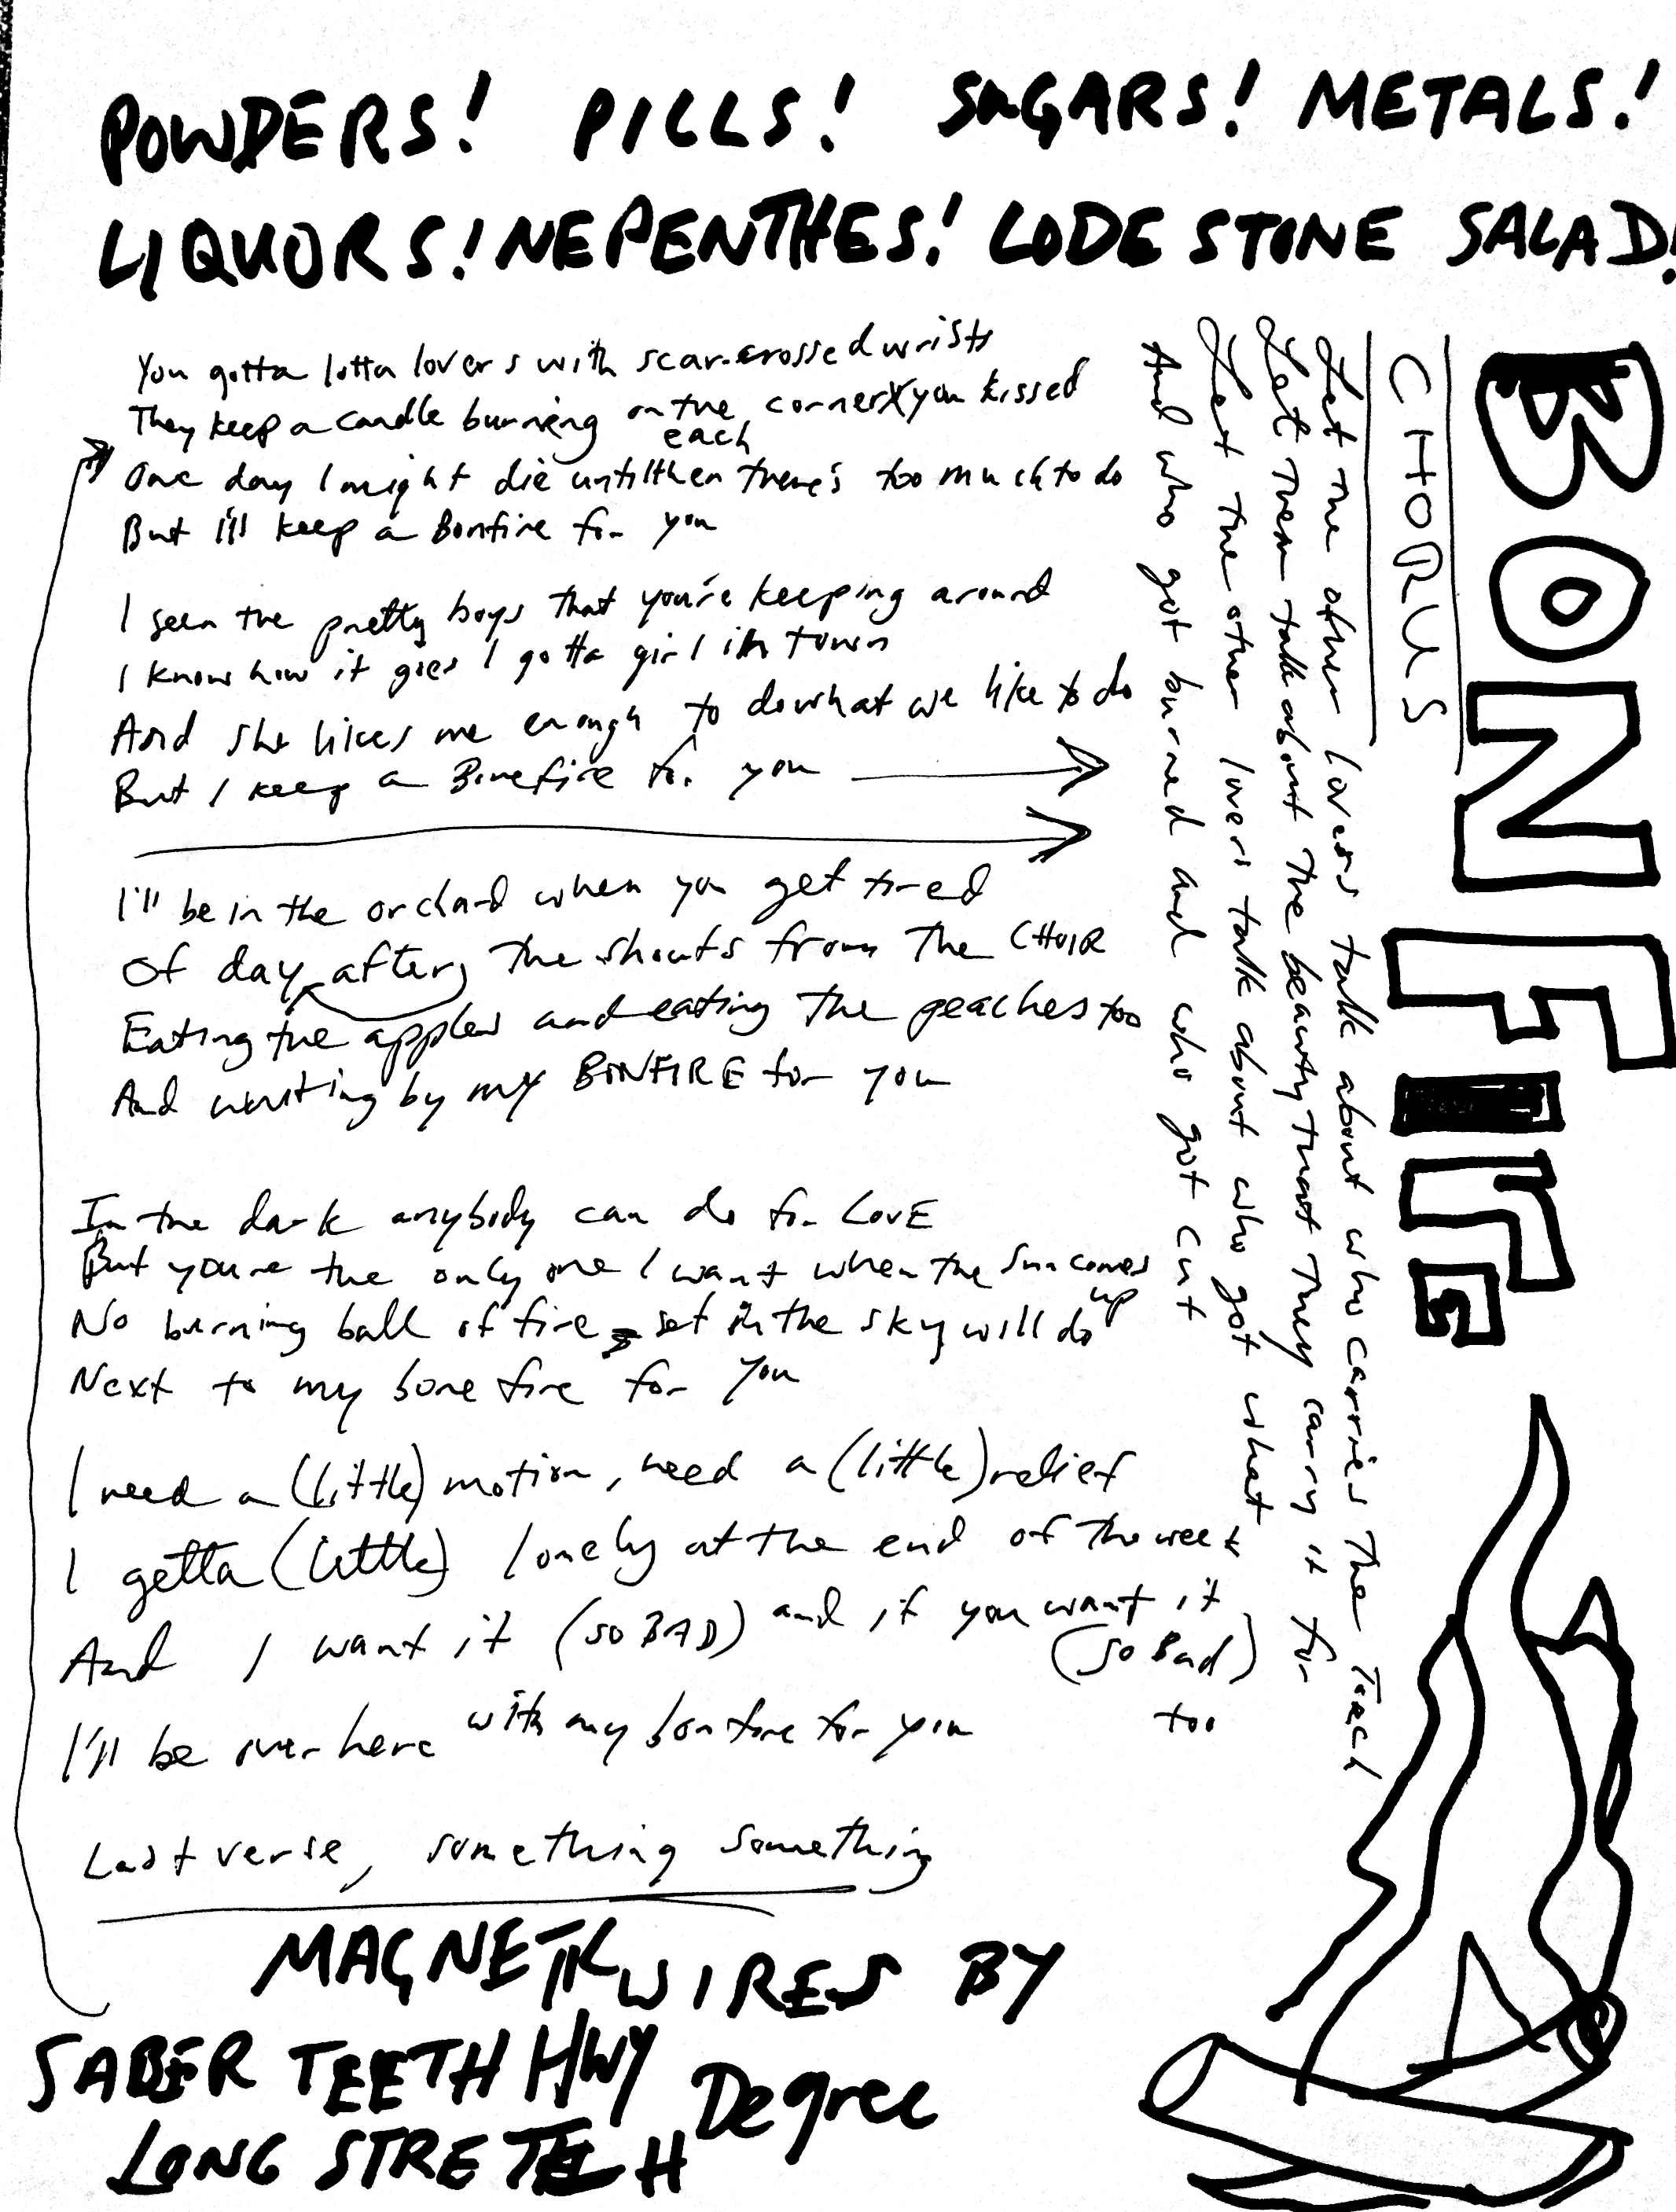 10 Bonfire Lyrics